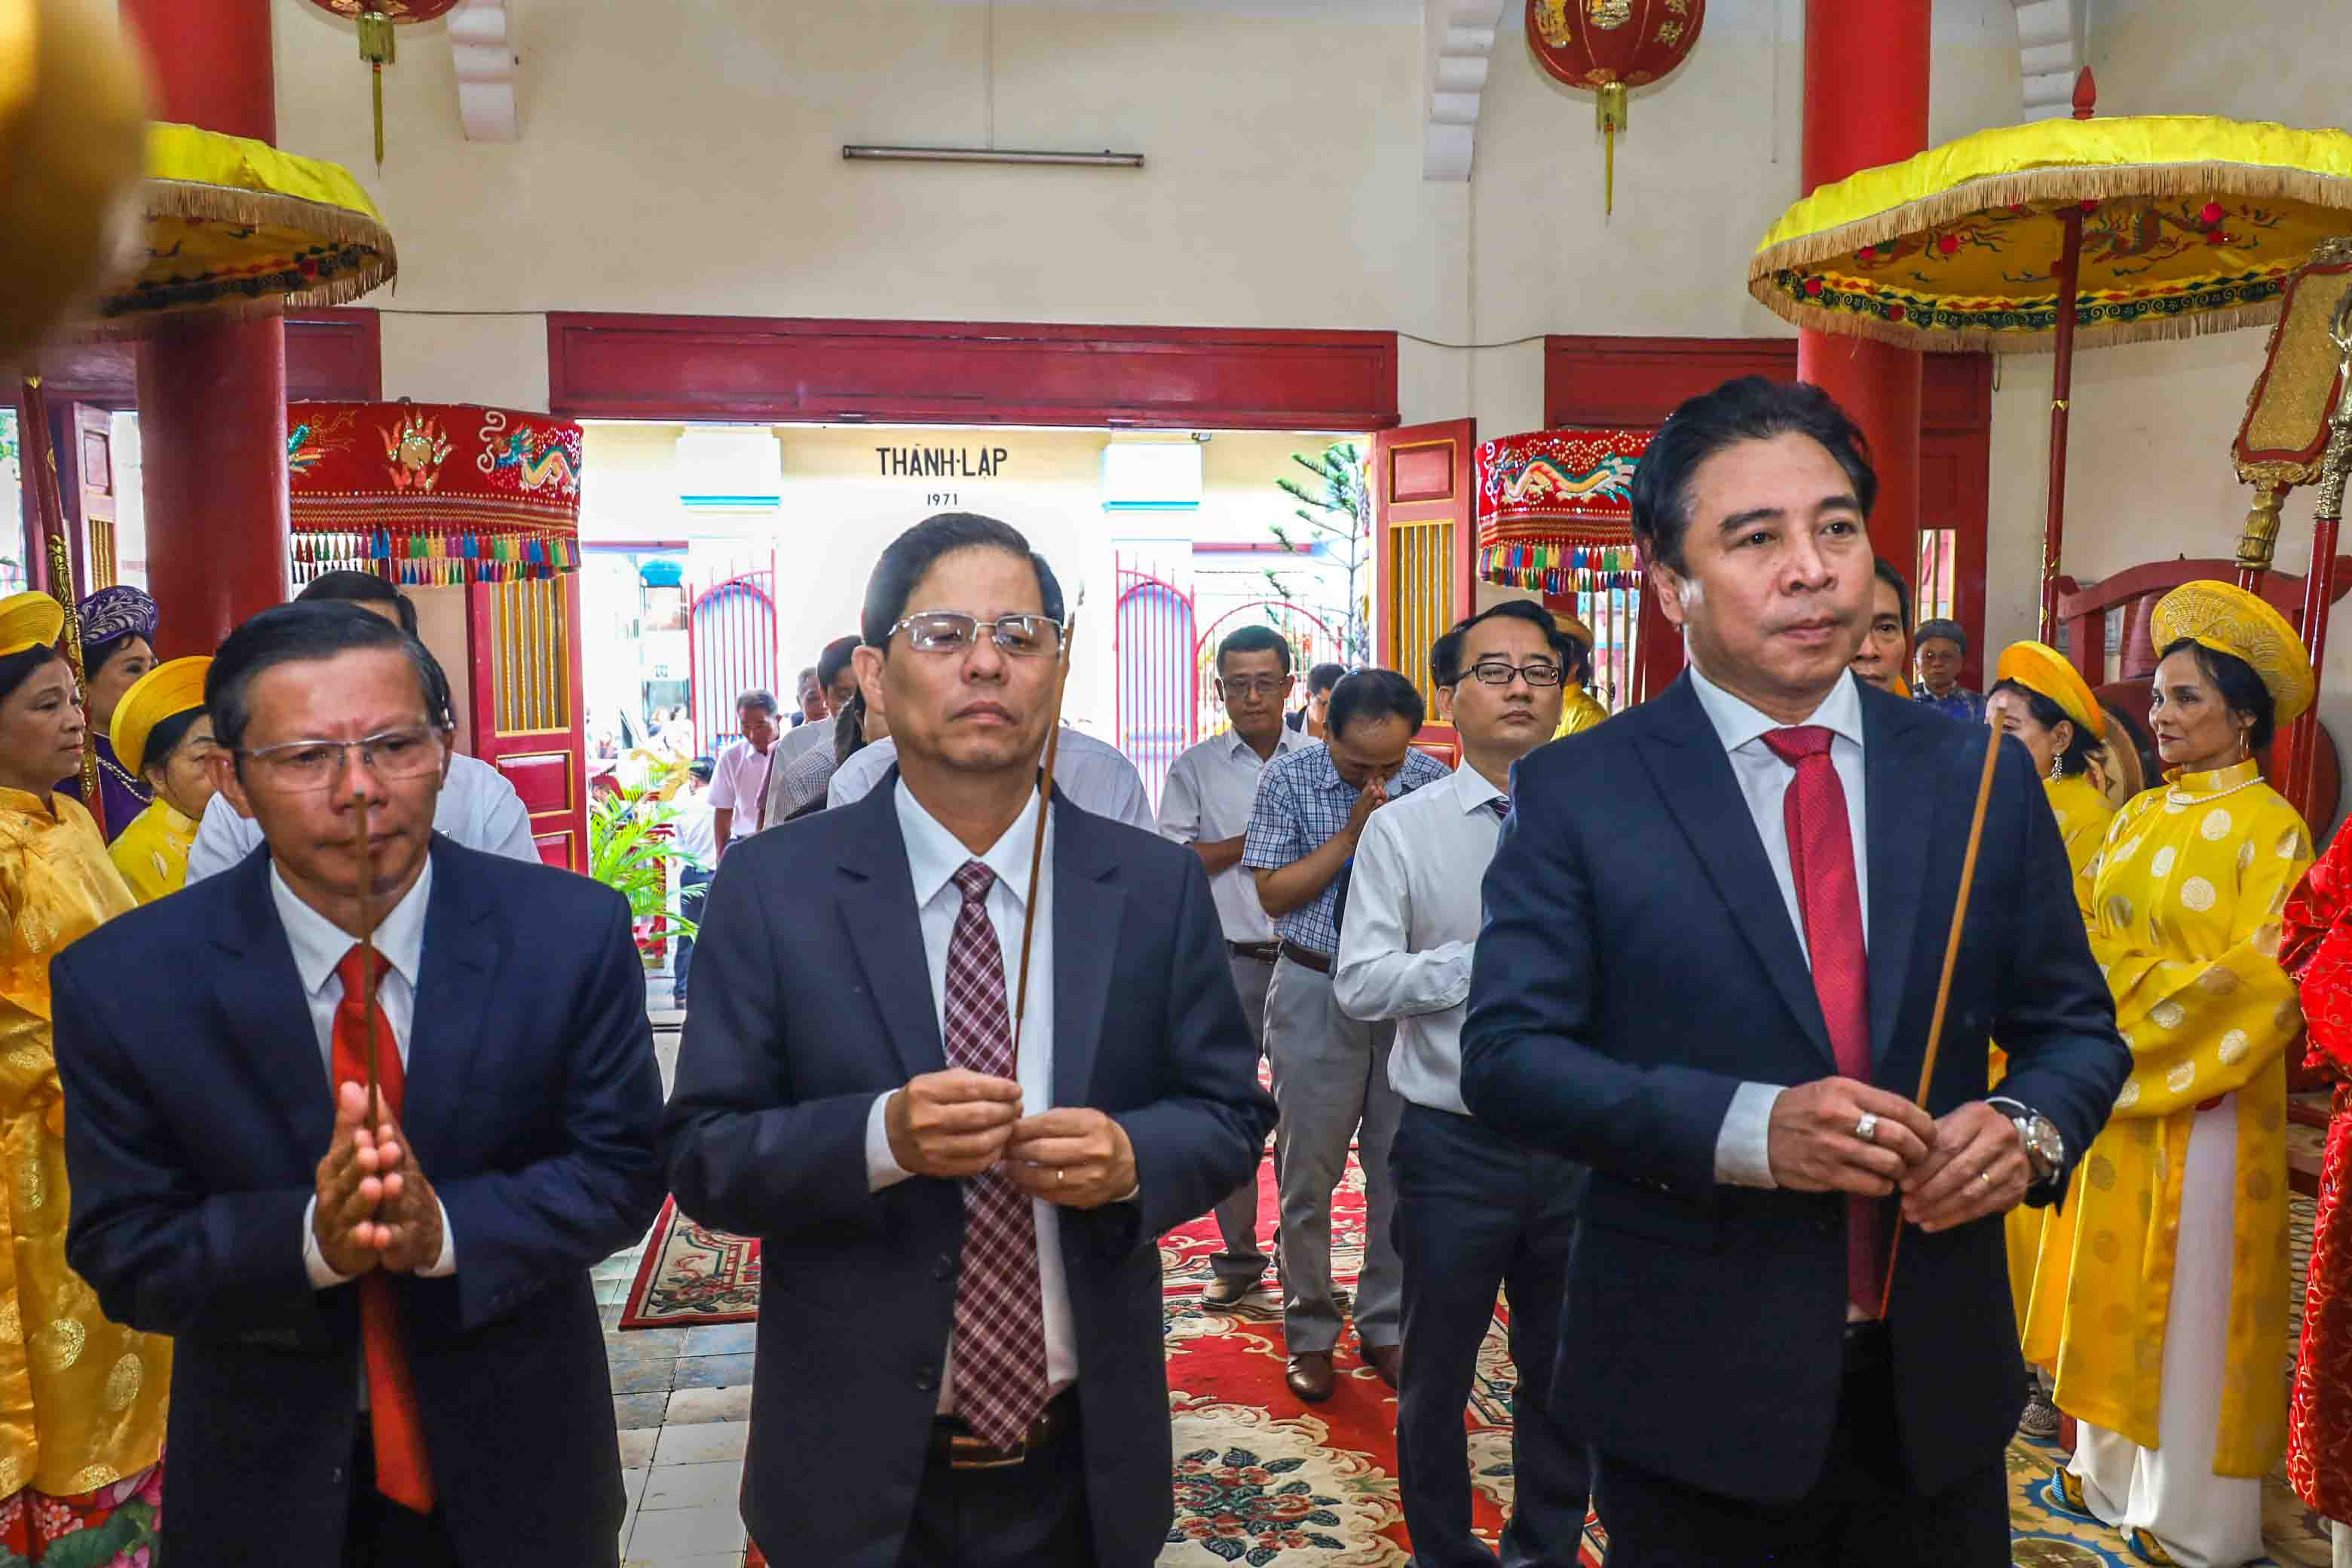 Khanh Hoa's leadership offering incense in tribute to the Kings